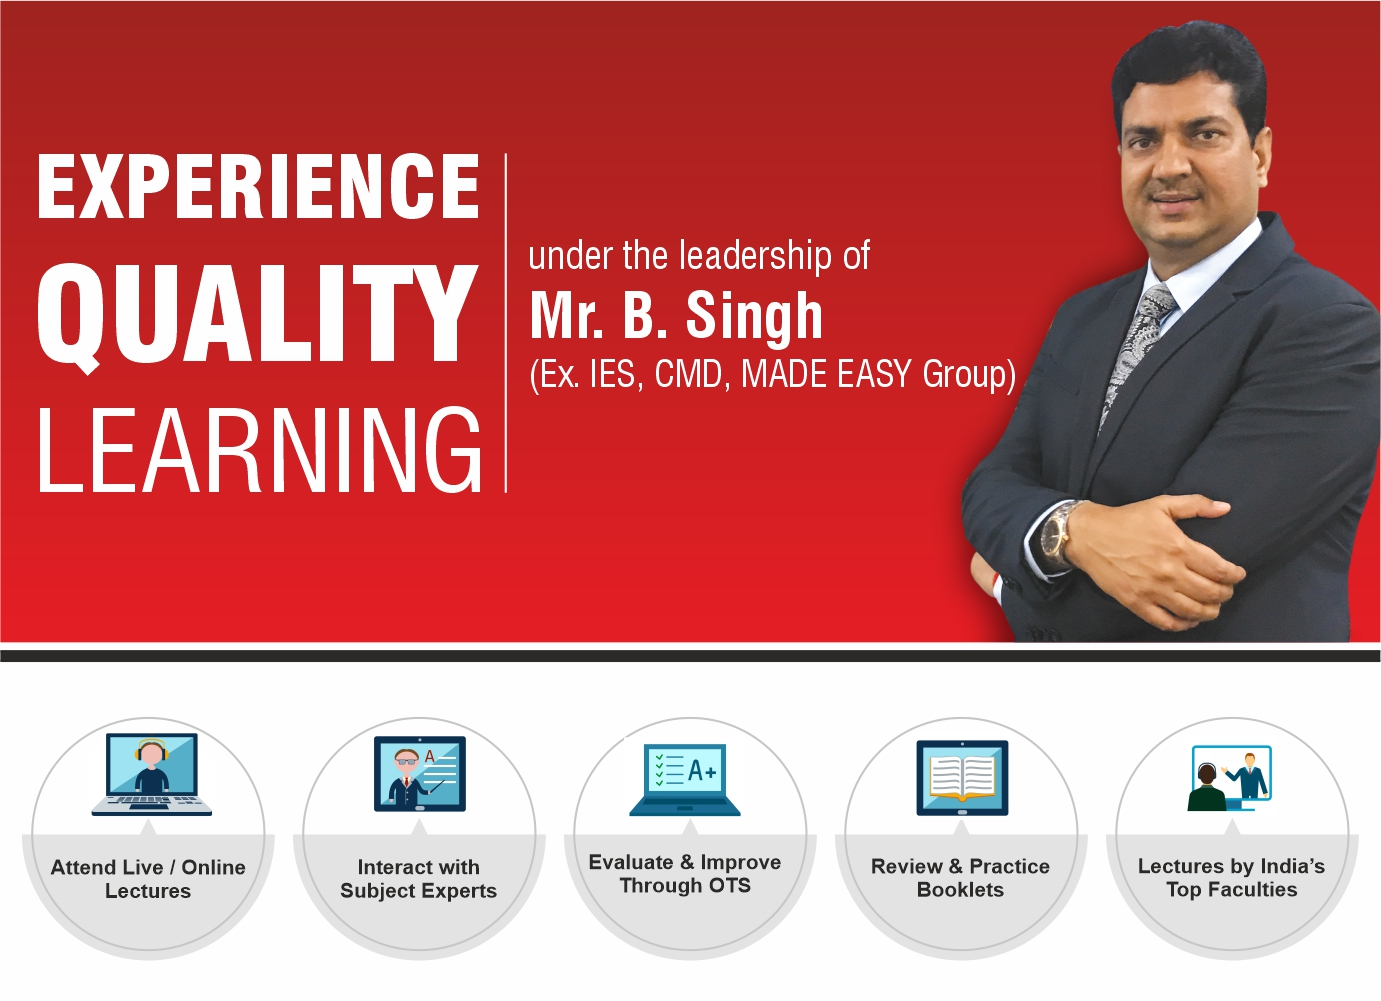 Experience the concept quality learning